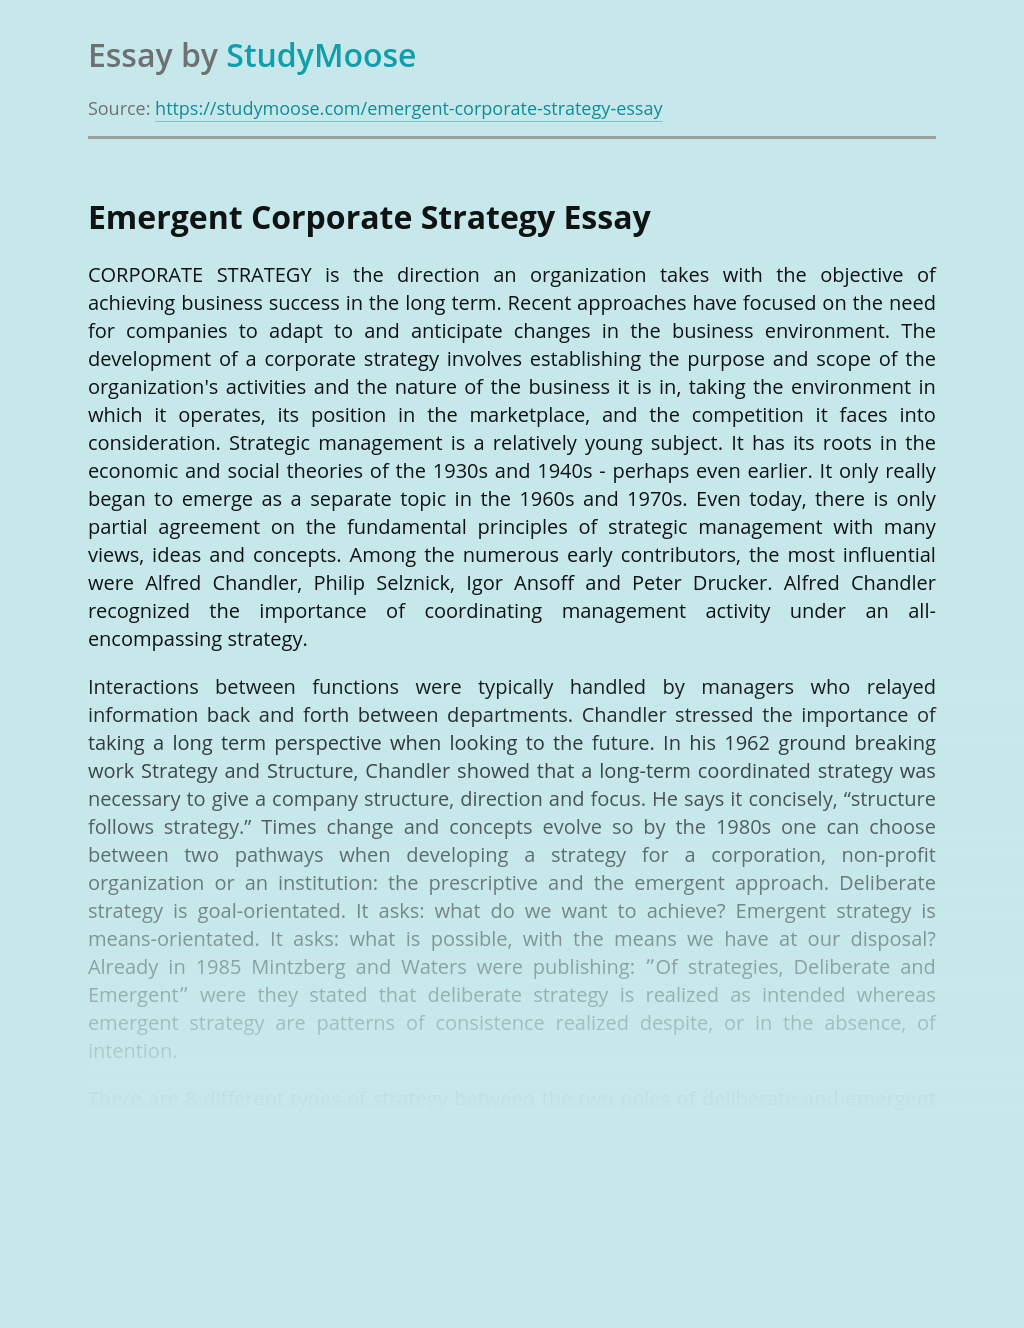 Emergent Corporate Strategy